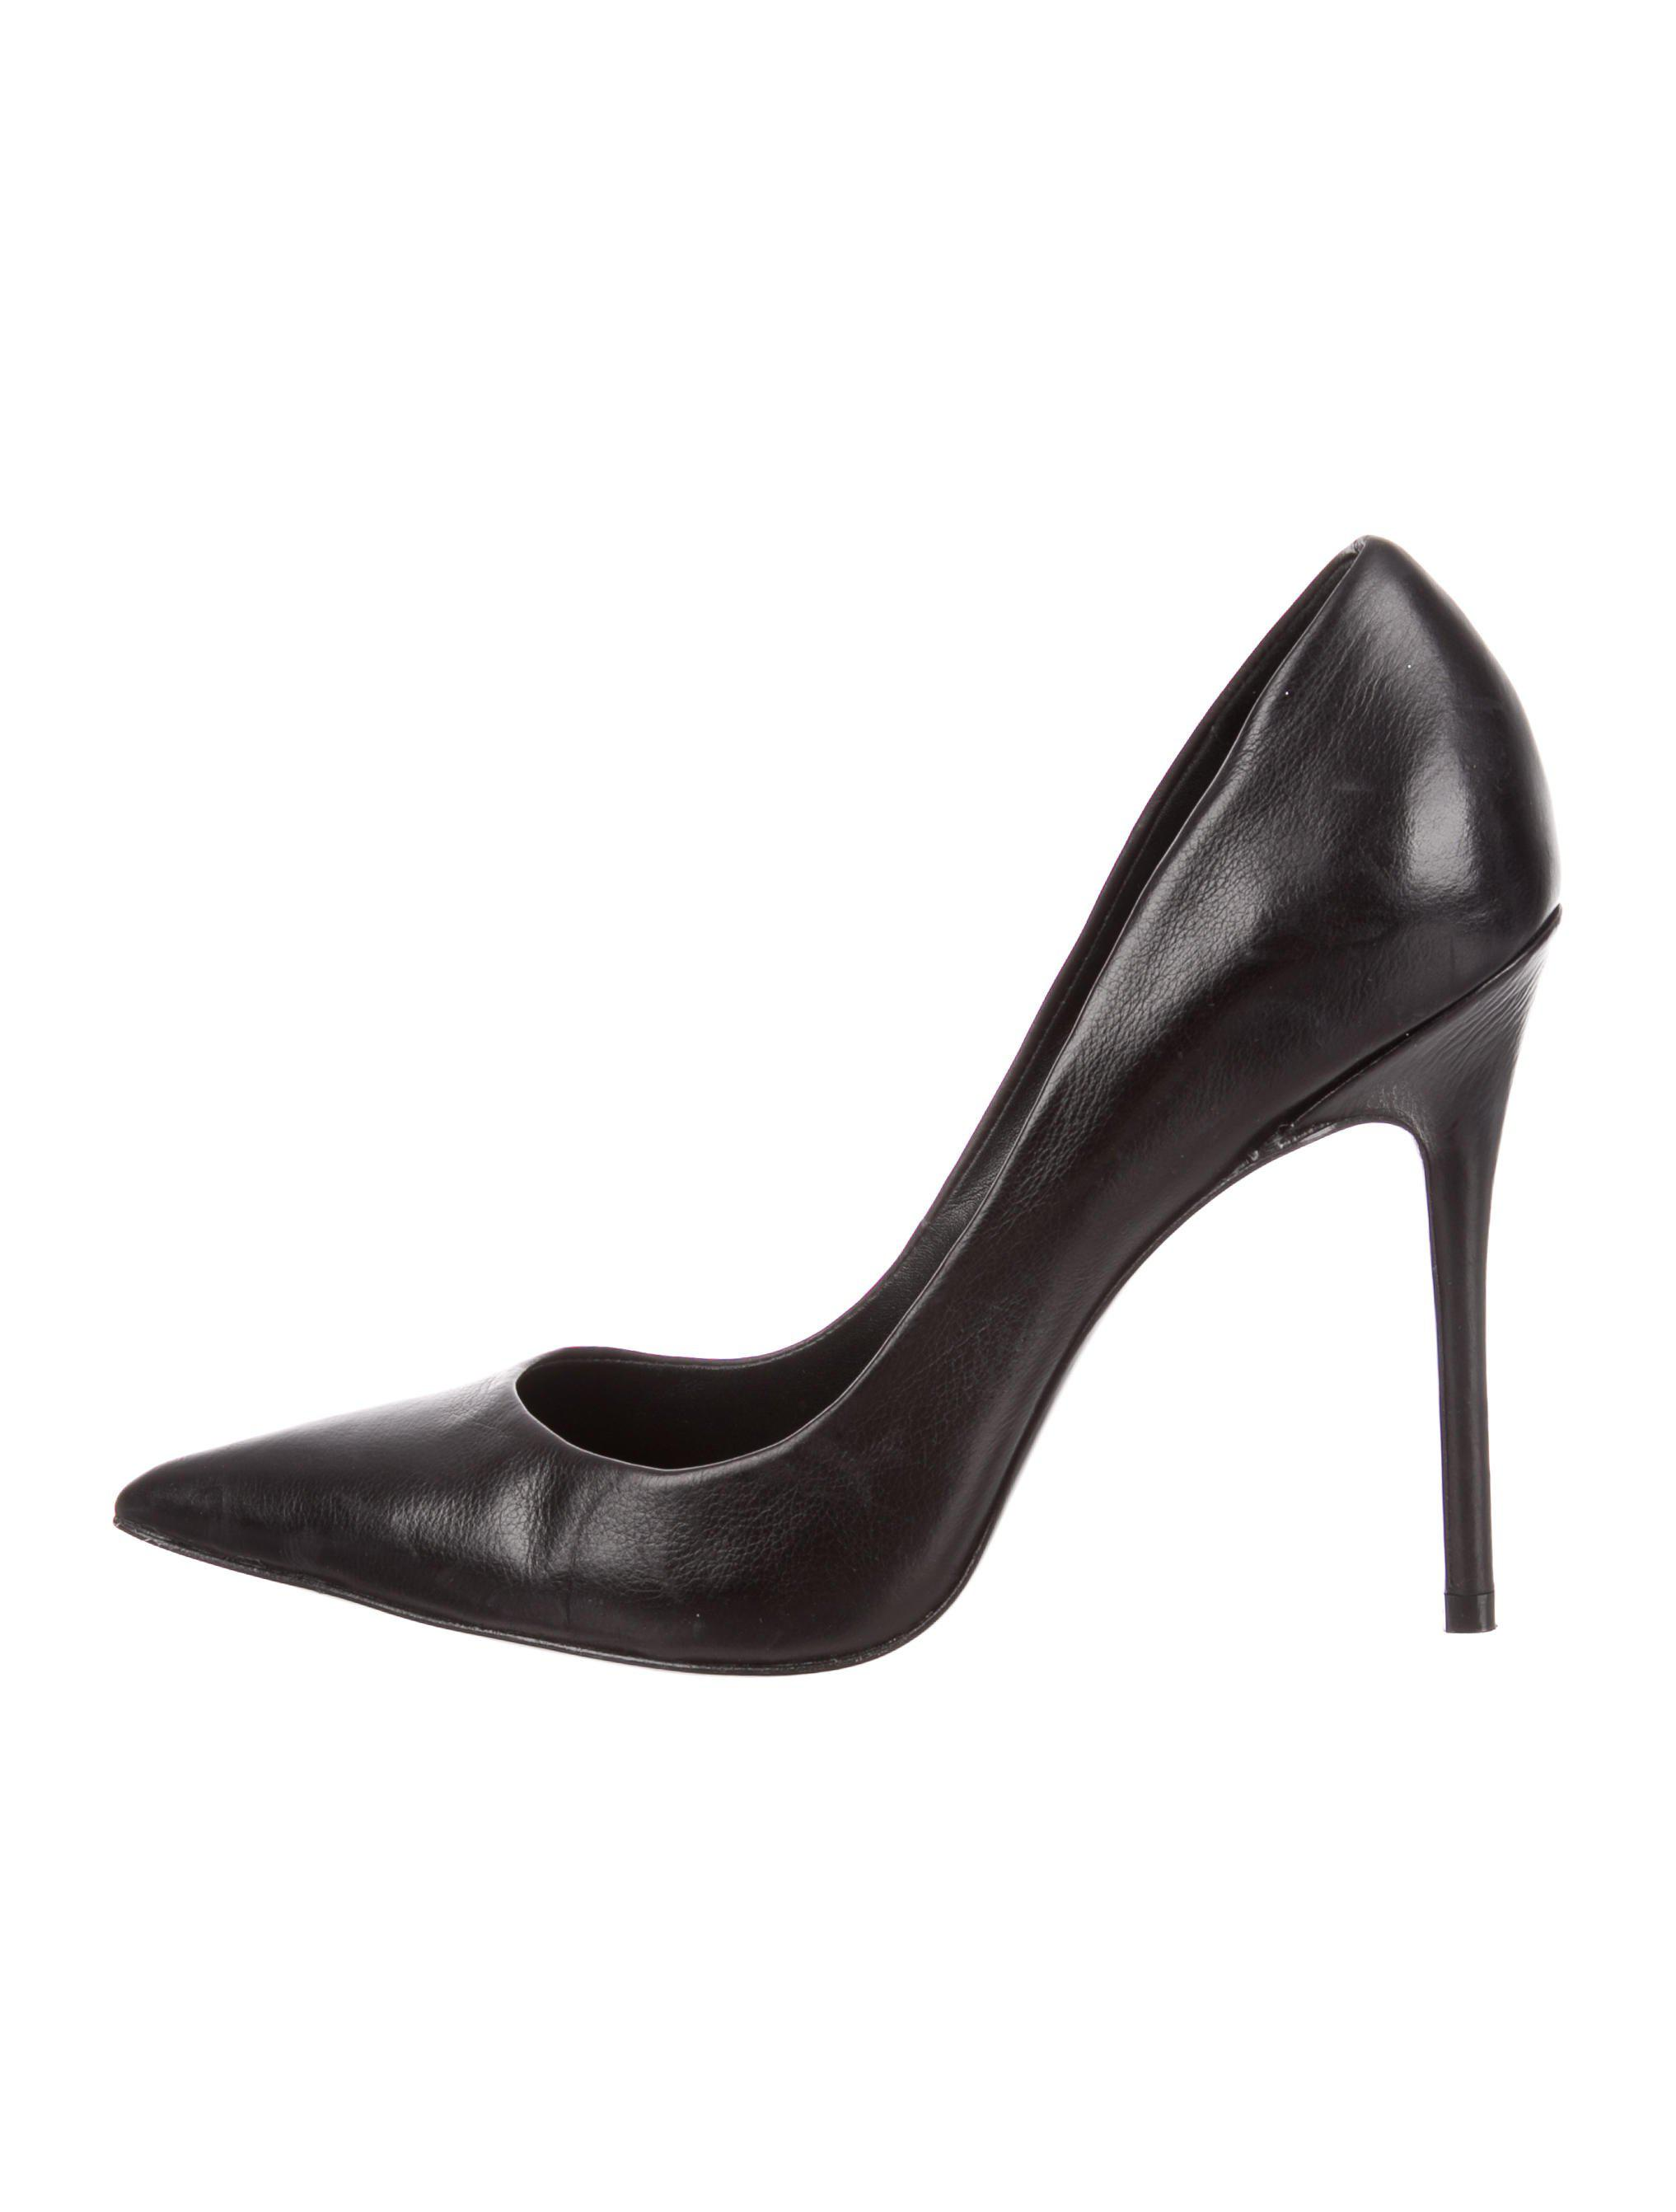 2888c32124cd94 Lyst - Theyskens  Theory Pointed-toe Leather Pumps in Black